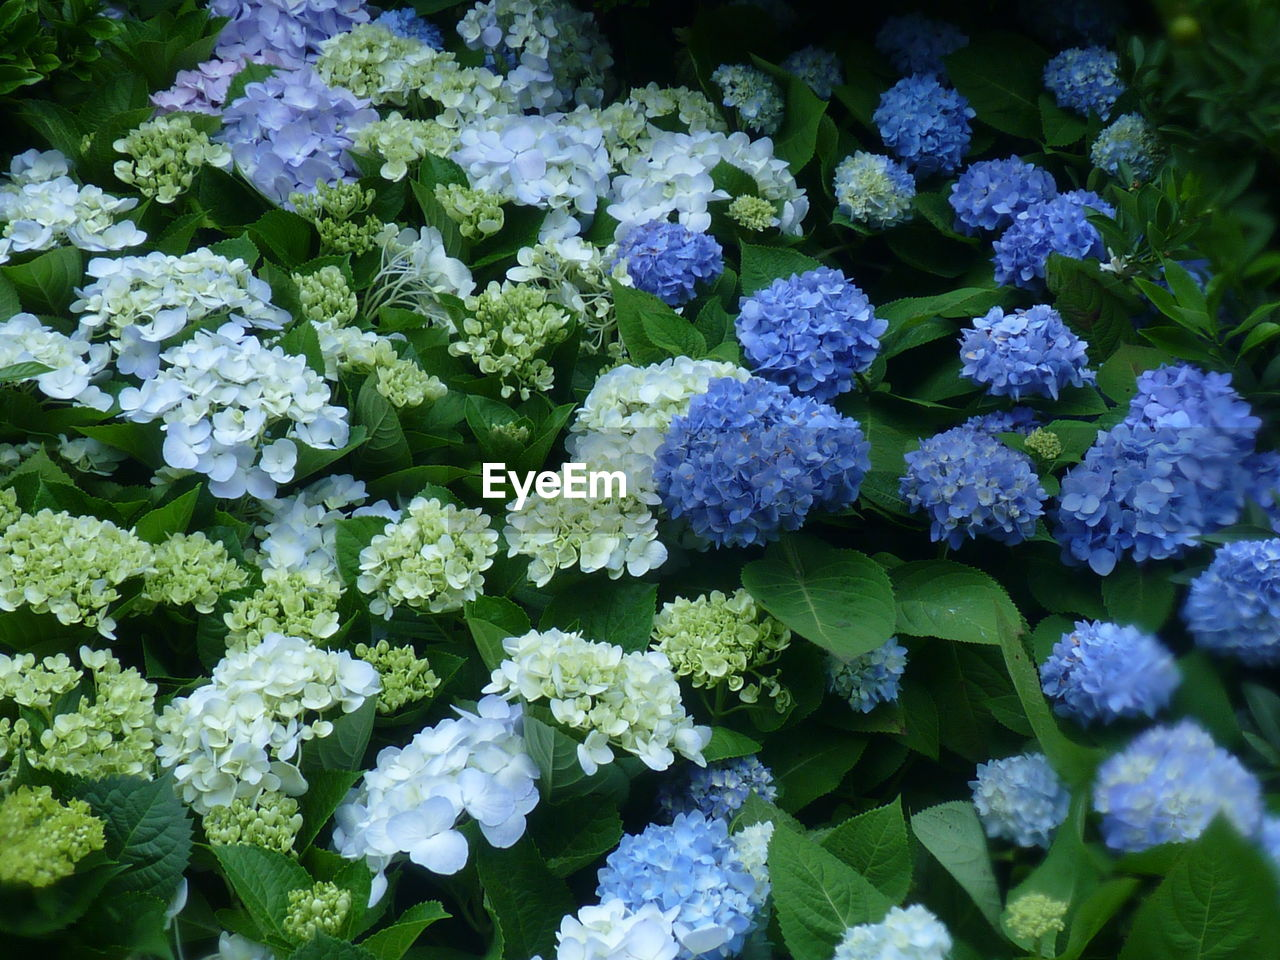 freshness, flowering plant, flower, beauty in nature, vulnerability, fragility, plant, growth, leaf, inflorescence, no people, nature, day, plant part, close-up, petal, flower head, green color, high angle view, hydrangea, outdoors, purple, bunch of flowers, softness, lilac